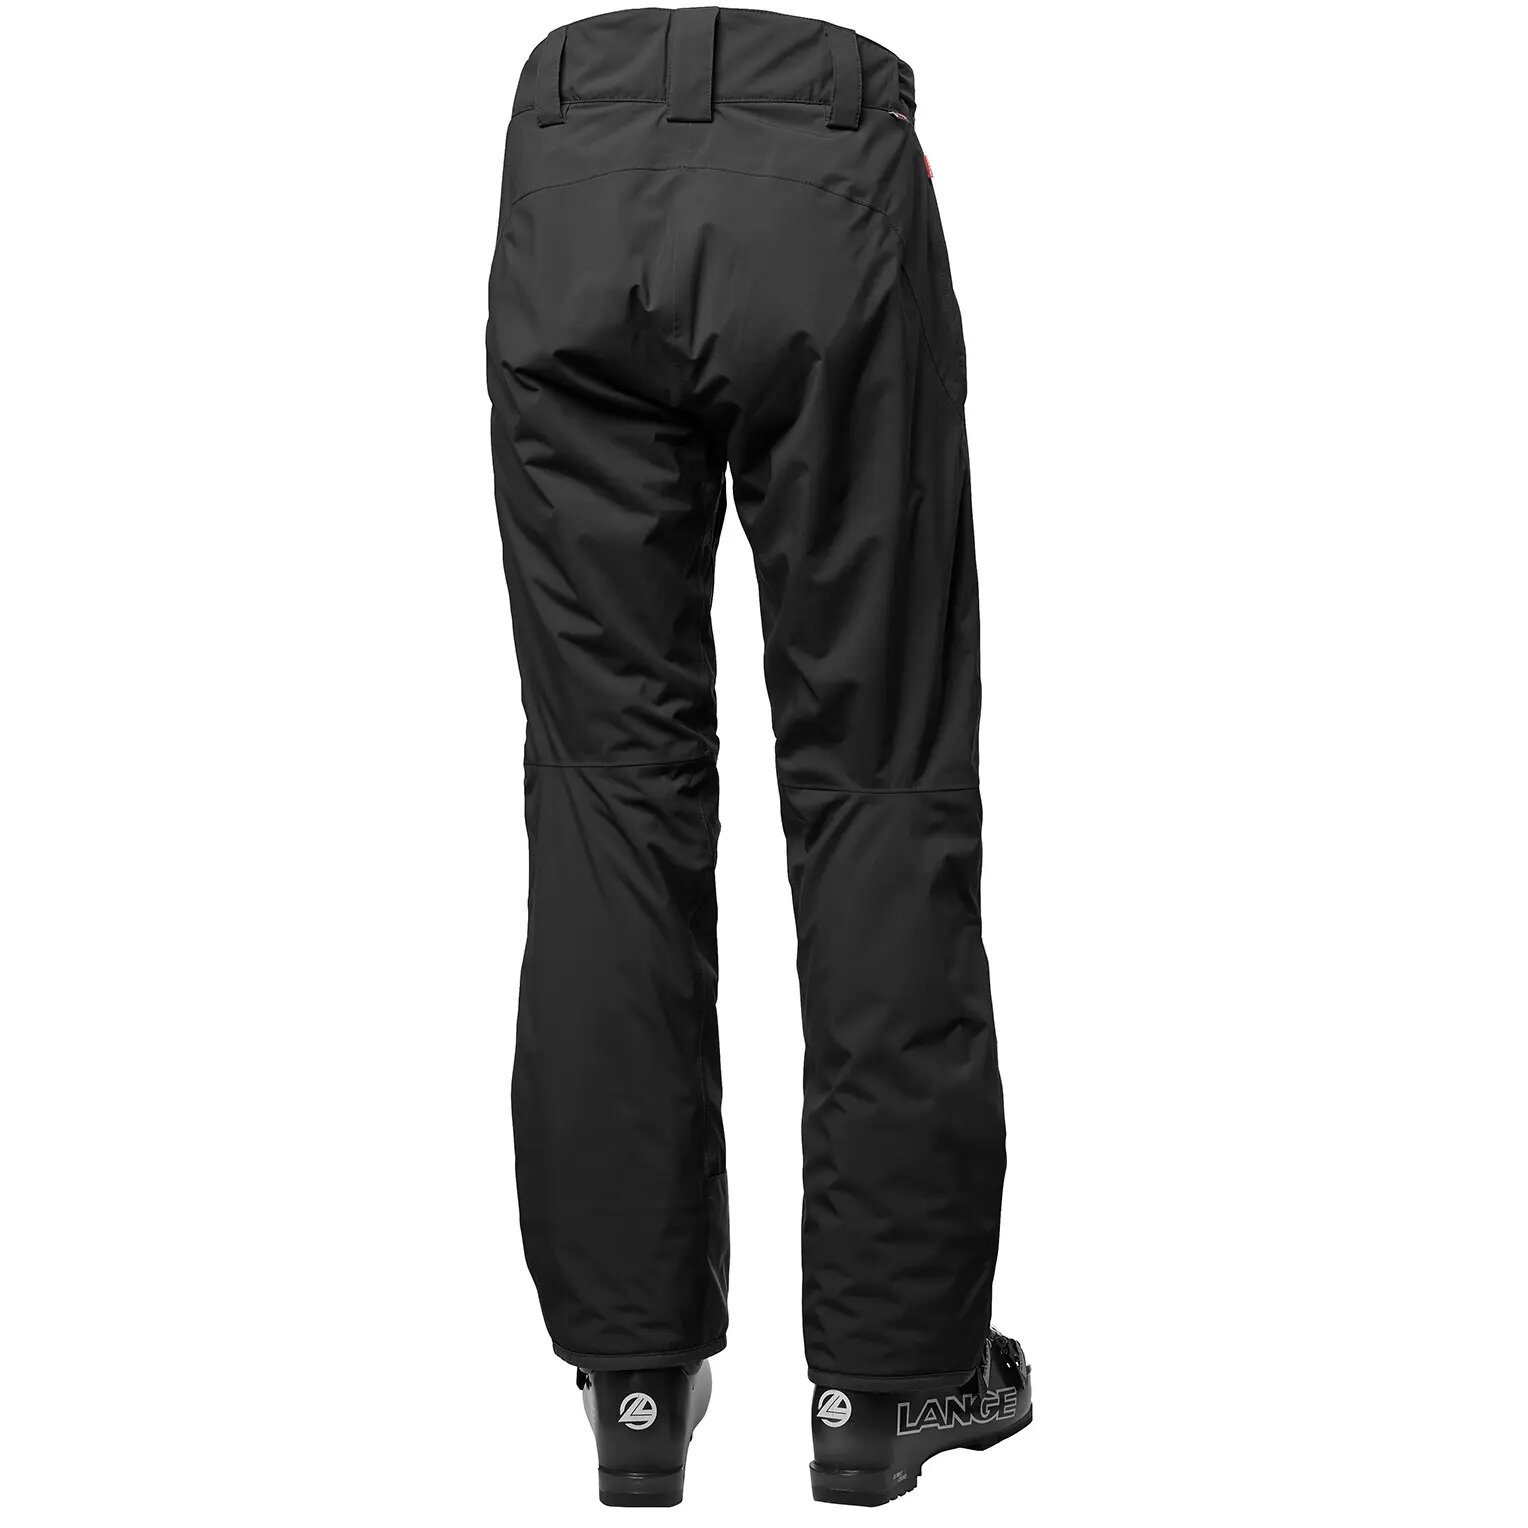 Helly Hansen Veocity Insulated Pant, Black